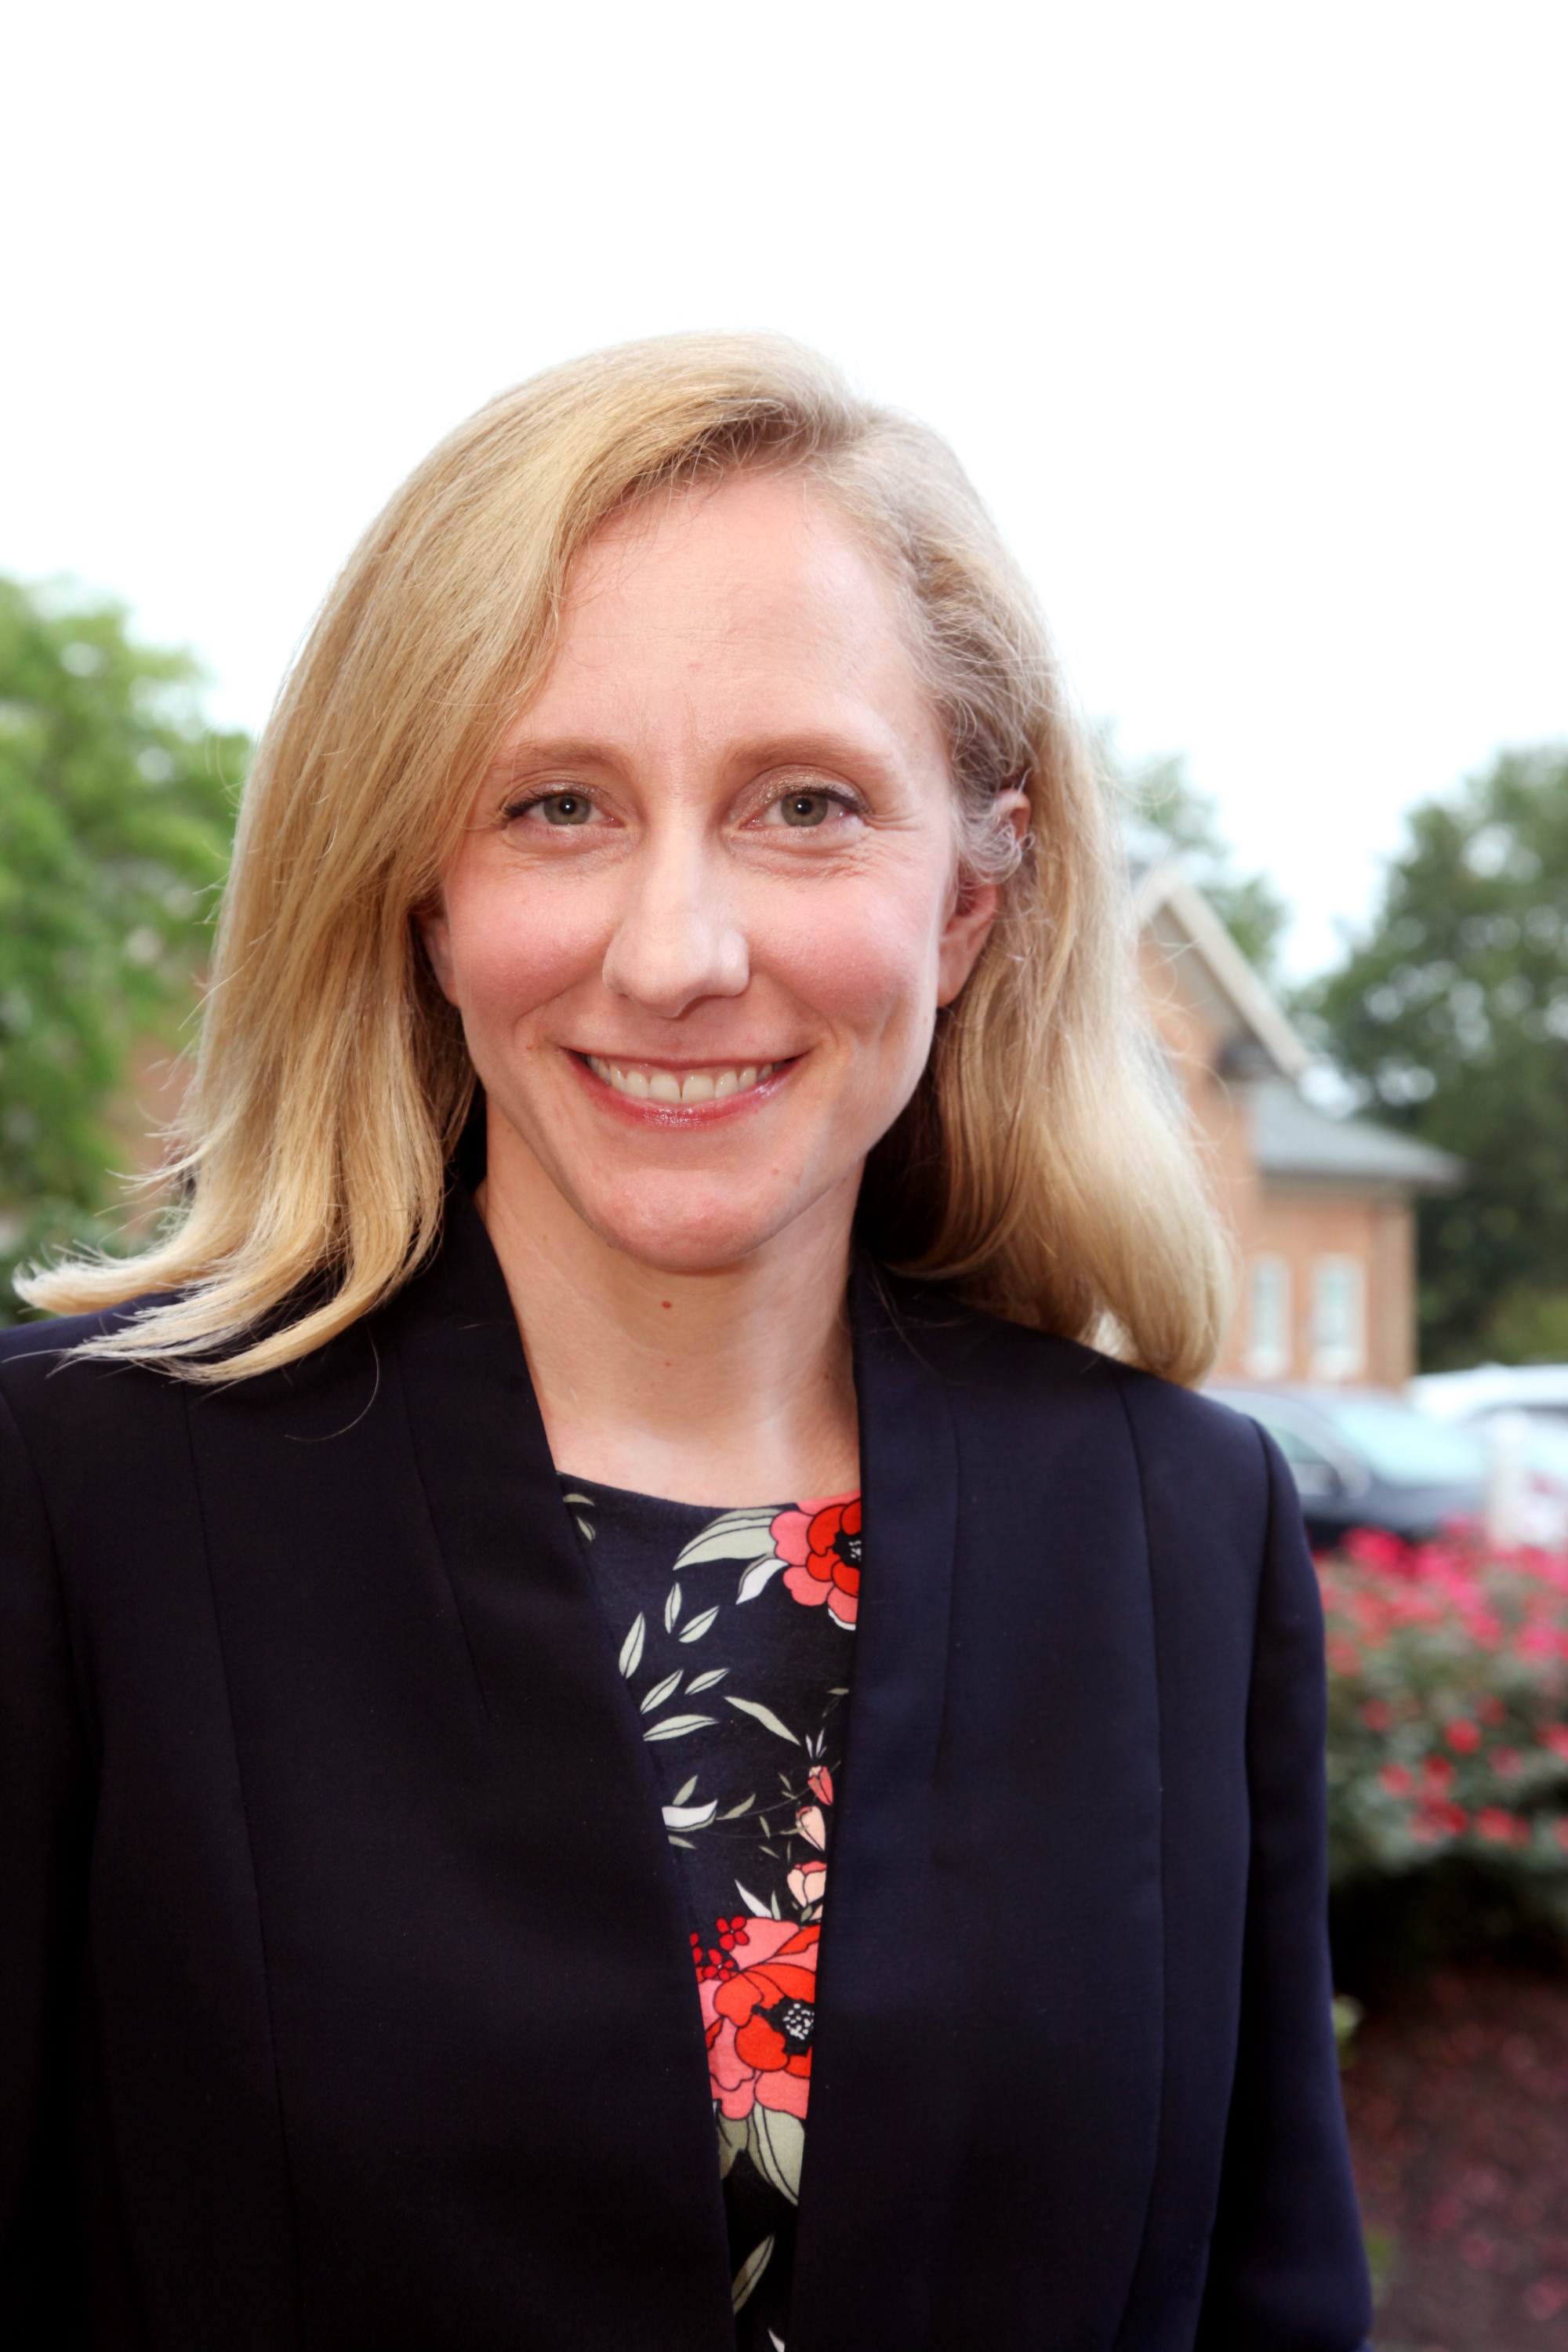 Caption: Abigail Spanberger, Credit: Rebecca D'Angelo